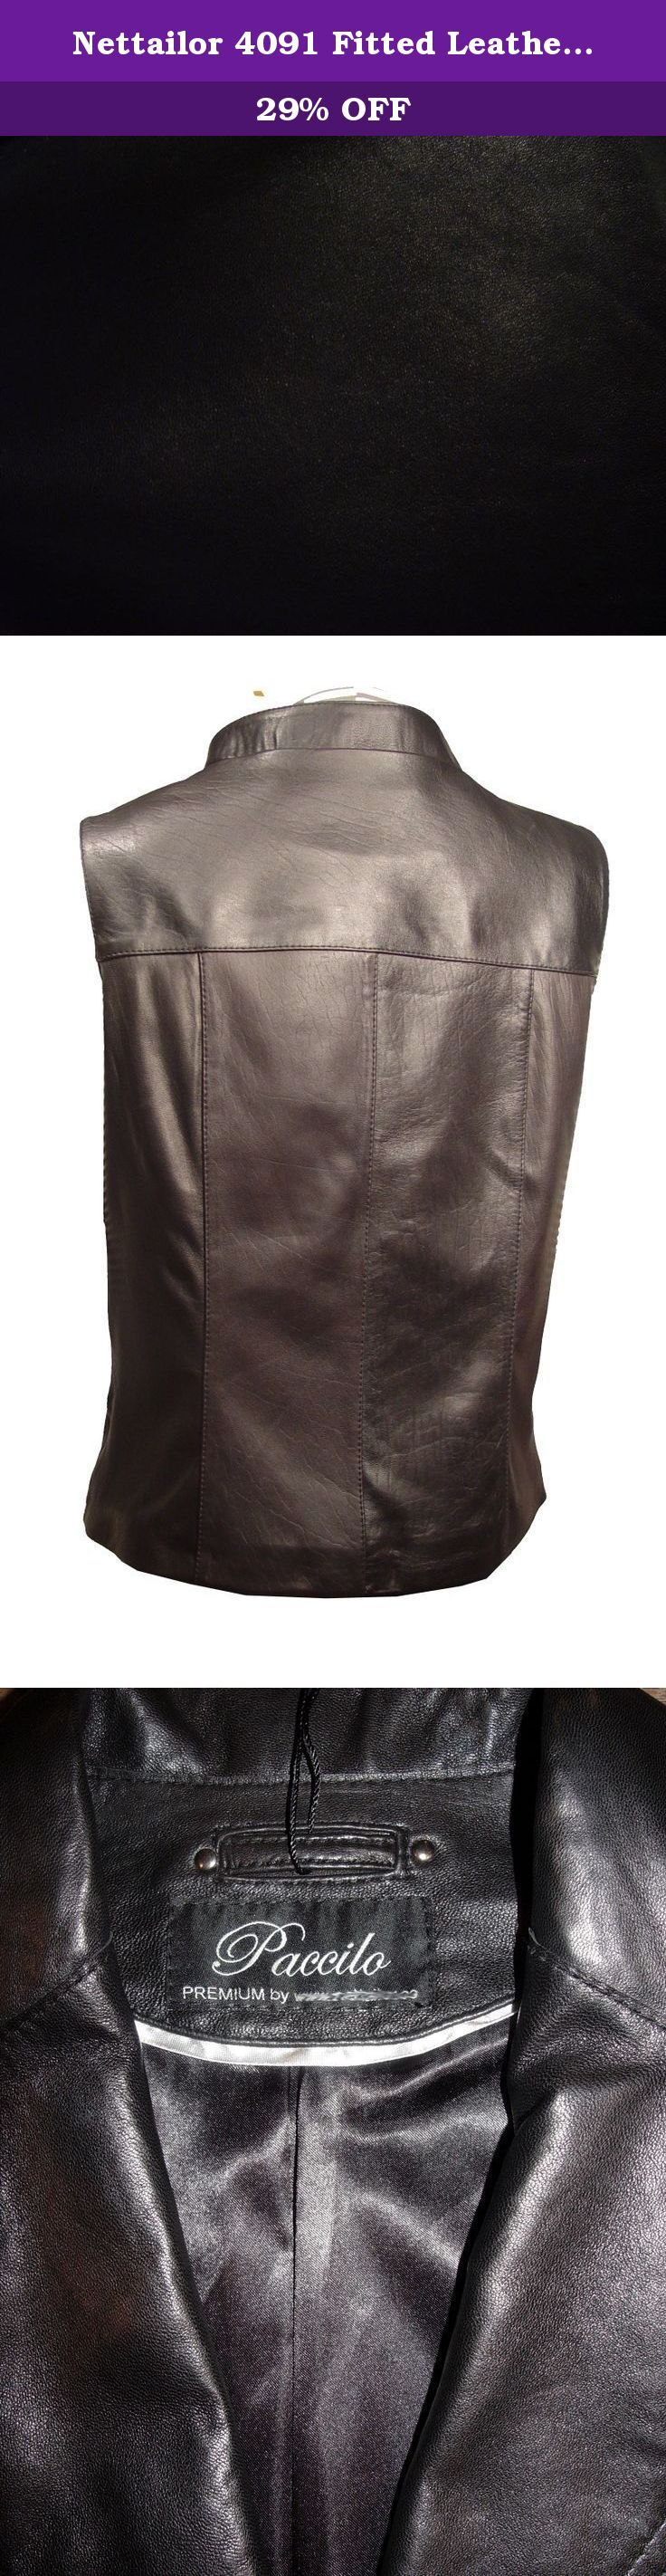 "Nettailor 4091 Fitted Leather Female motorcycle Vests. Lambskin, Stand Up Collar, Zip Front. Not all leather is the same. When vendors say or state, ""leather or genuine leather"", they generally use ""pig skin"", which is the worst quality of leather and therefore inexpensive. If you choose to buy ""leather or genuine leather"" only because of its cheap price, you will mostly end up buying ""pig skin"" leather ($50-$150 price range). Lambskin, pigskin and cowhide (about $100-$300 range) are the..."